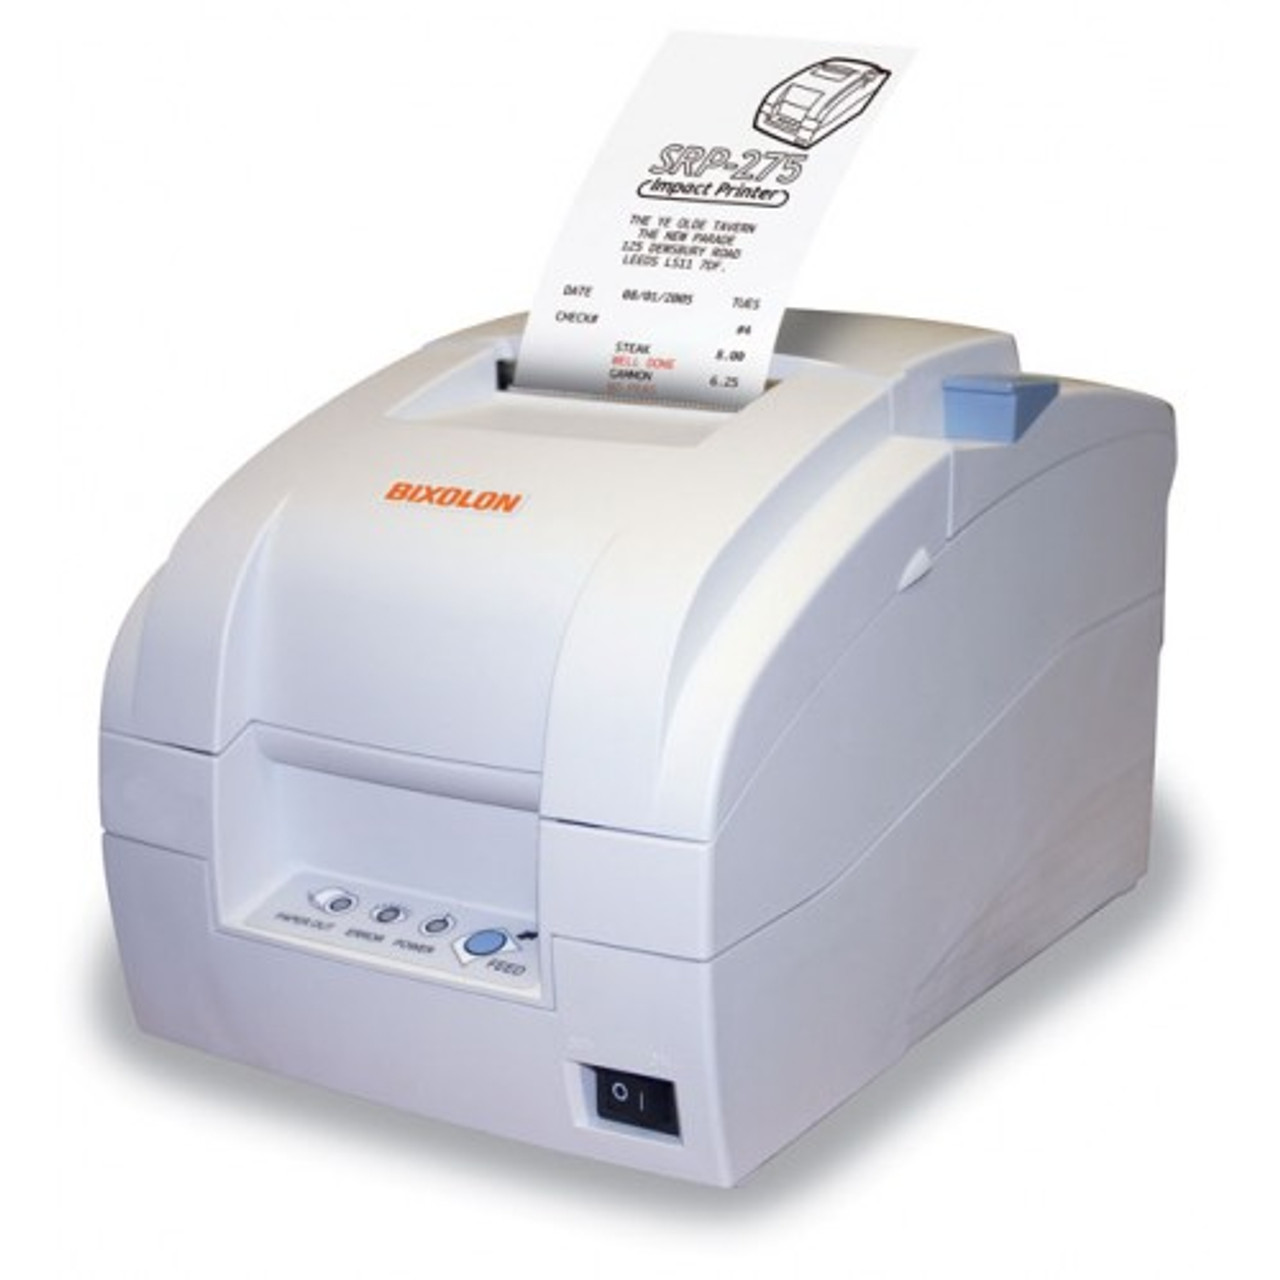 Bixolon SRP-275II, SRP-275CG Printer, White